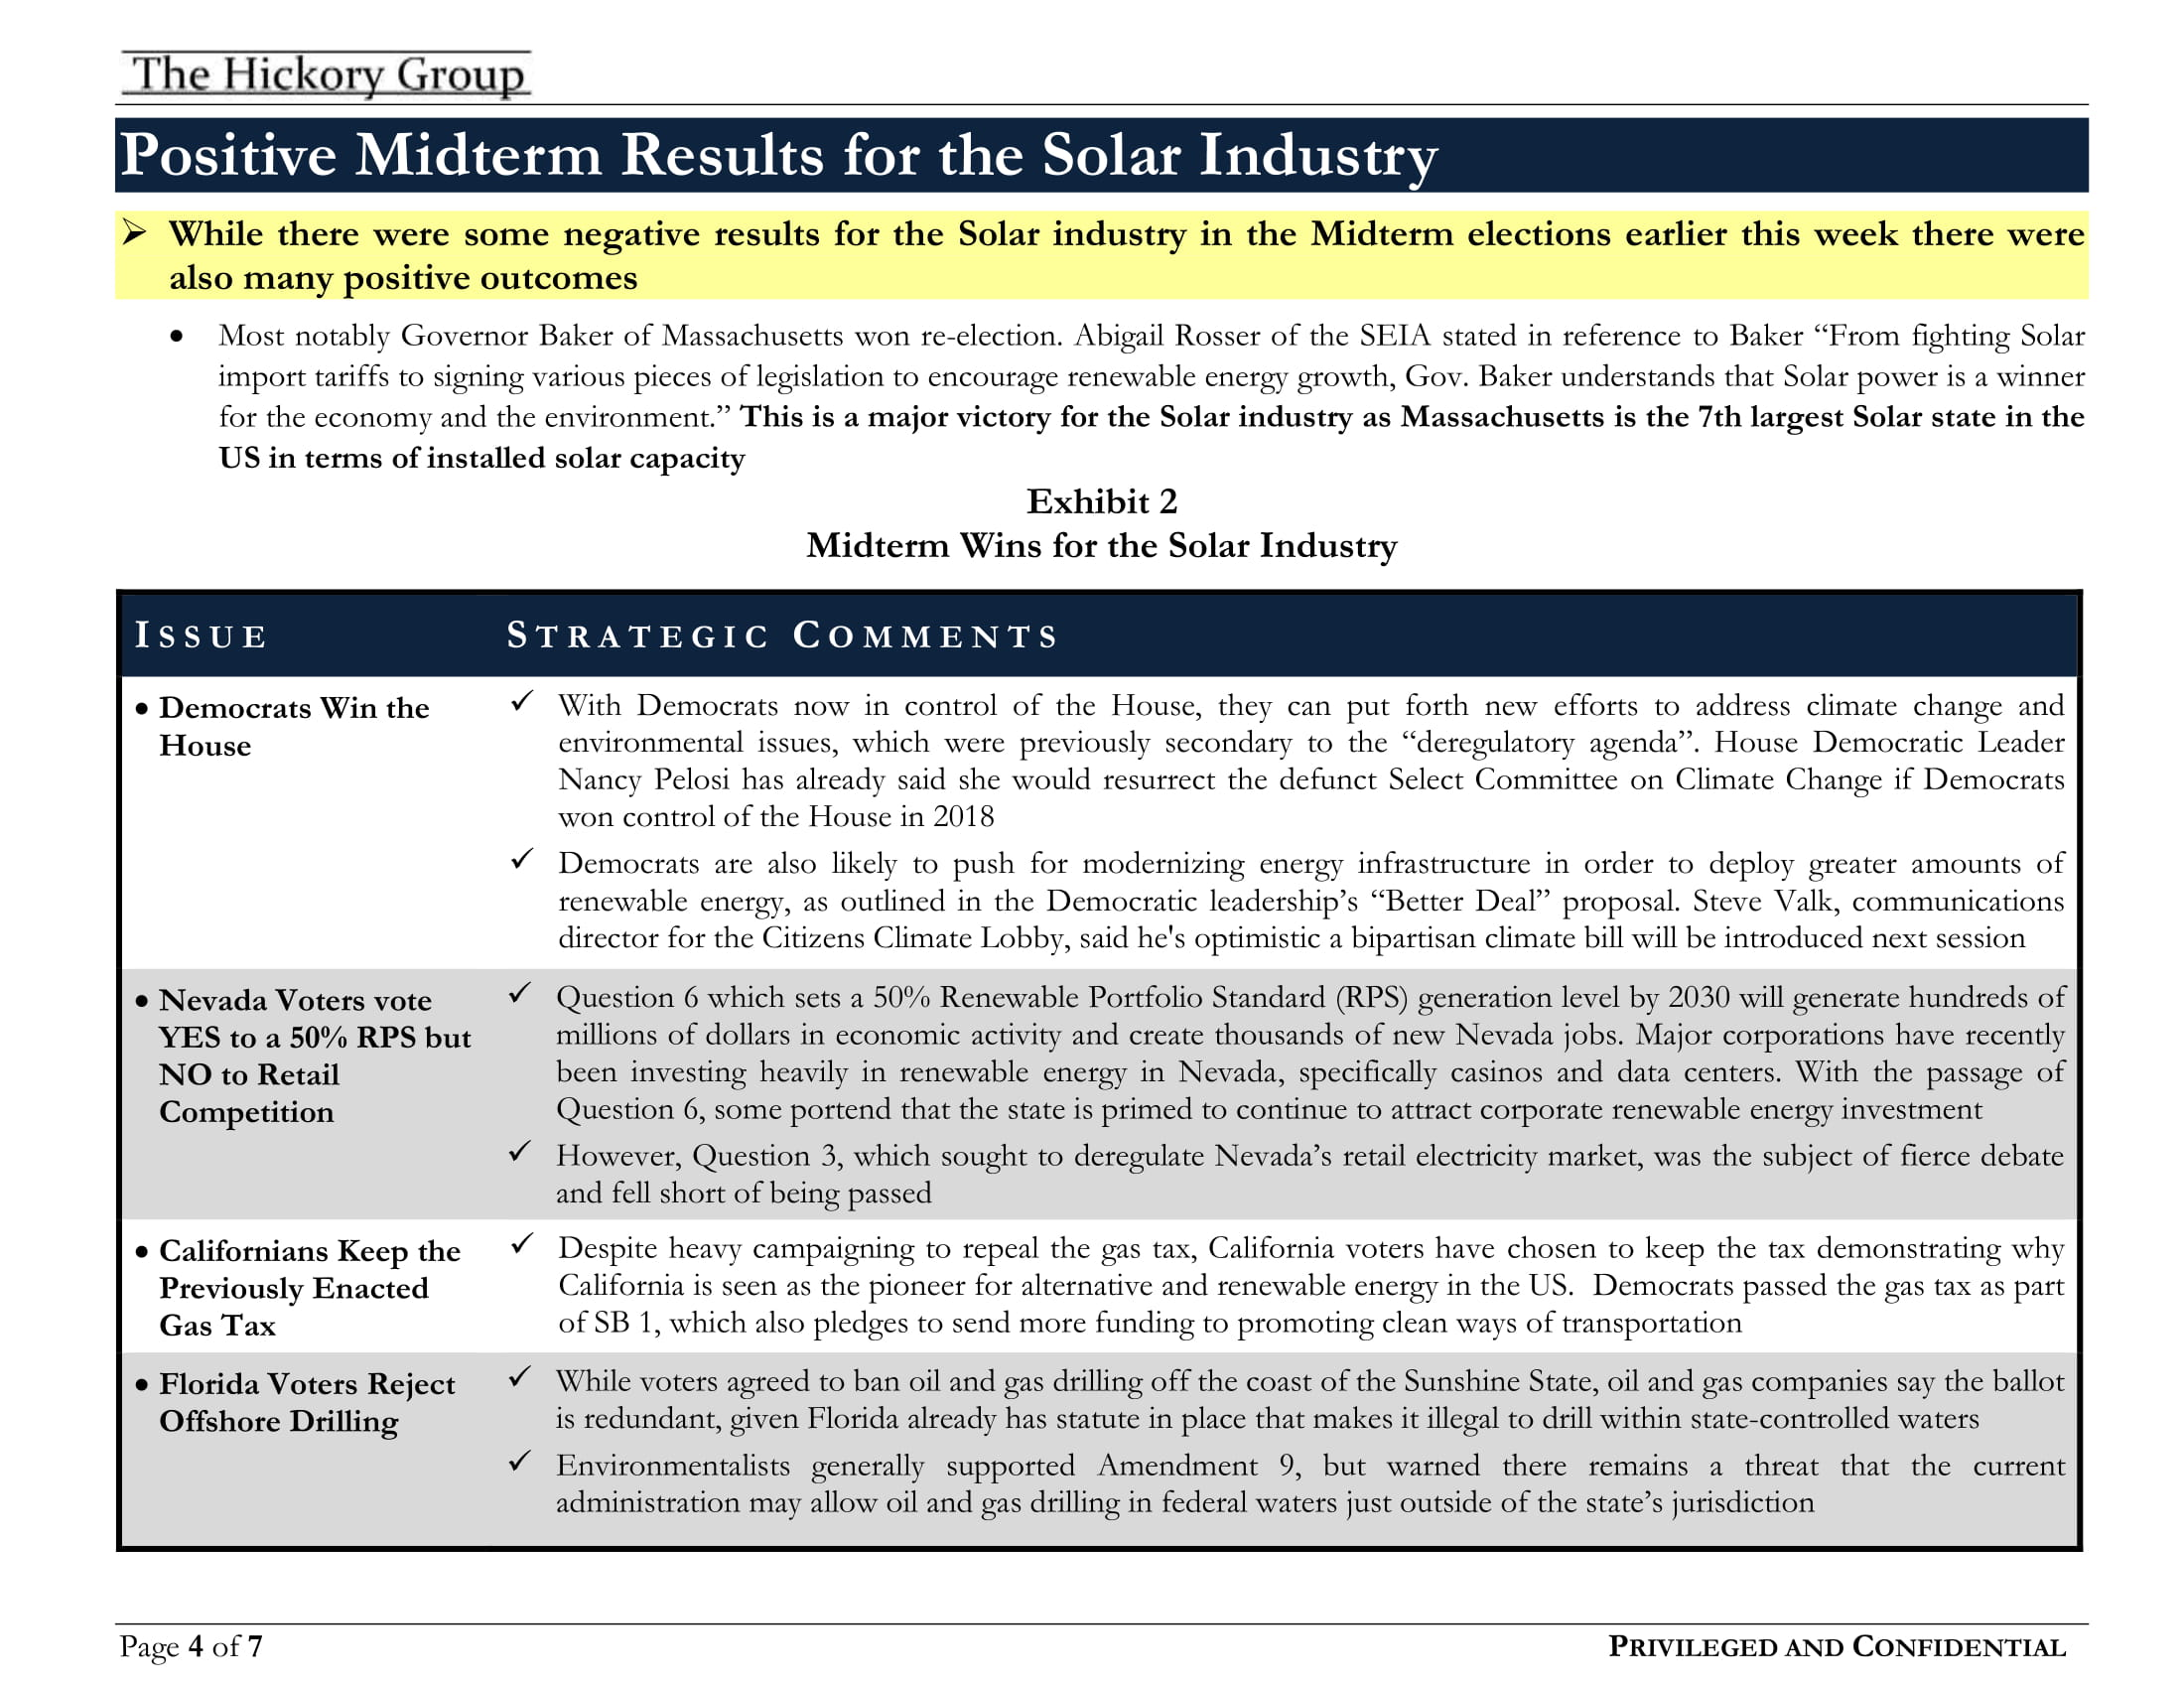 THG Solar Industry_The Midterms & Solar Wins and Losses (9 November 2018) Privileged Confidential(1)[8]-4.jpg